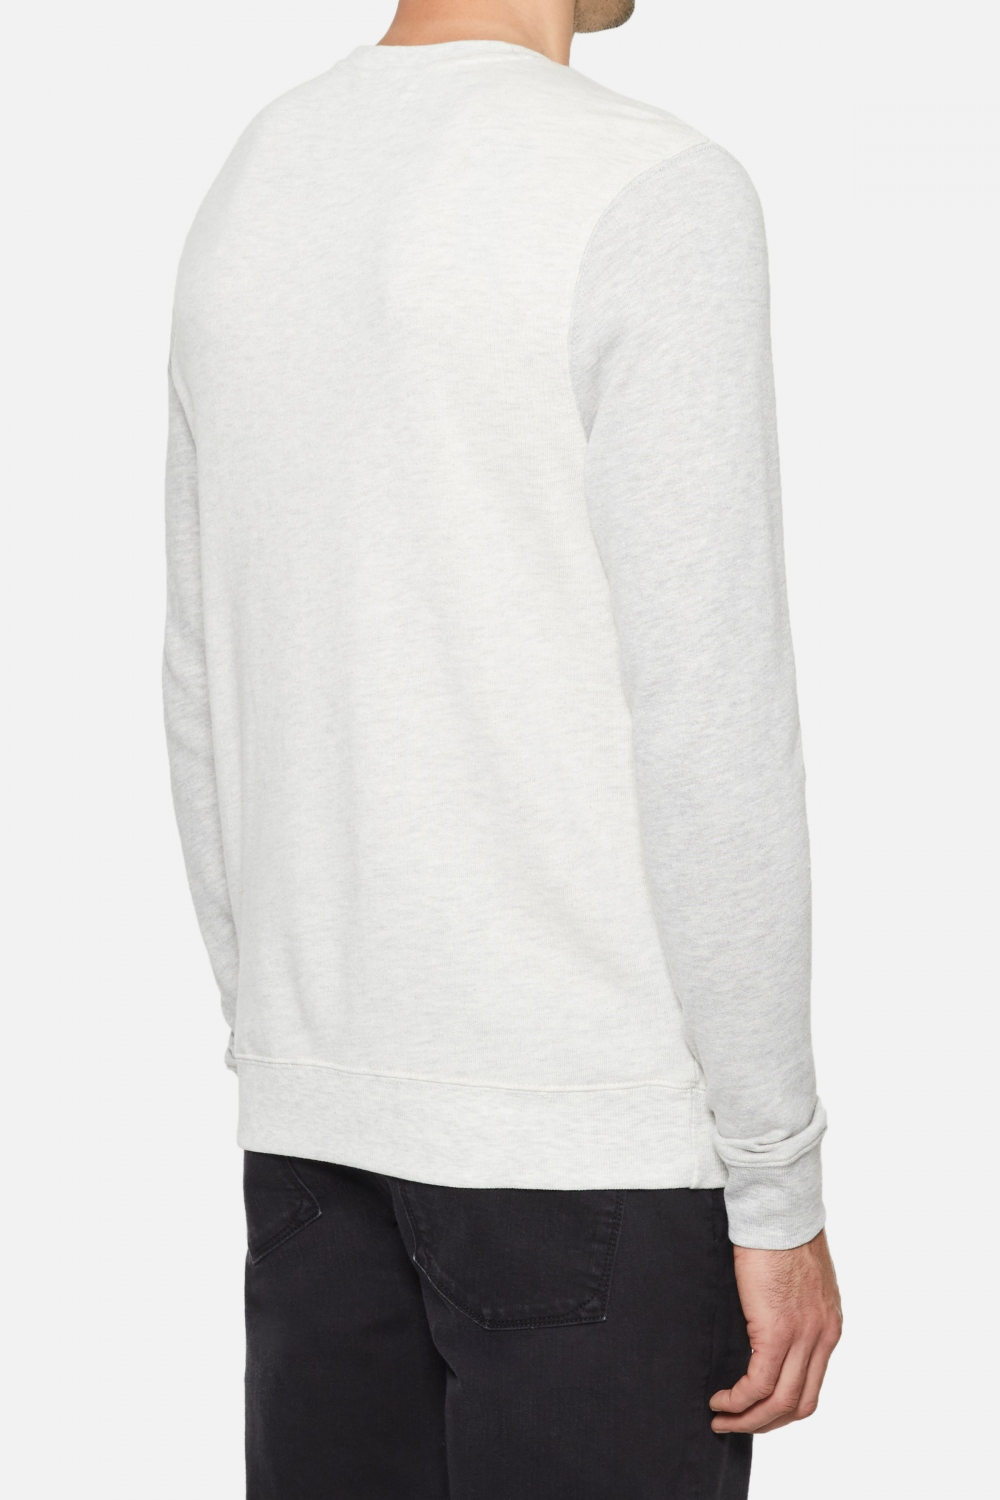 Arrow Pullover - Heather Off White | Five Four Club